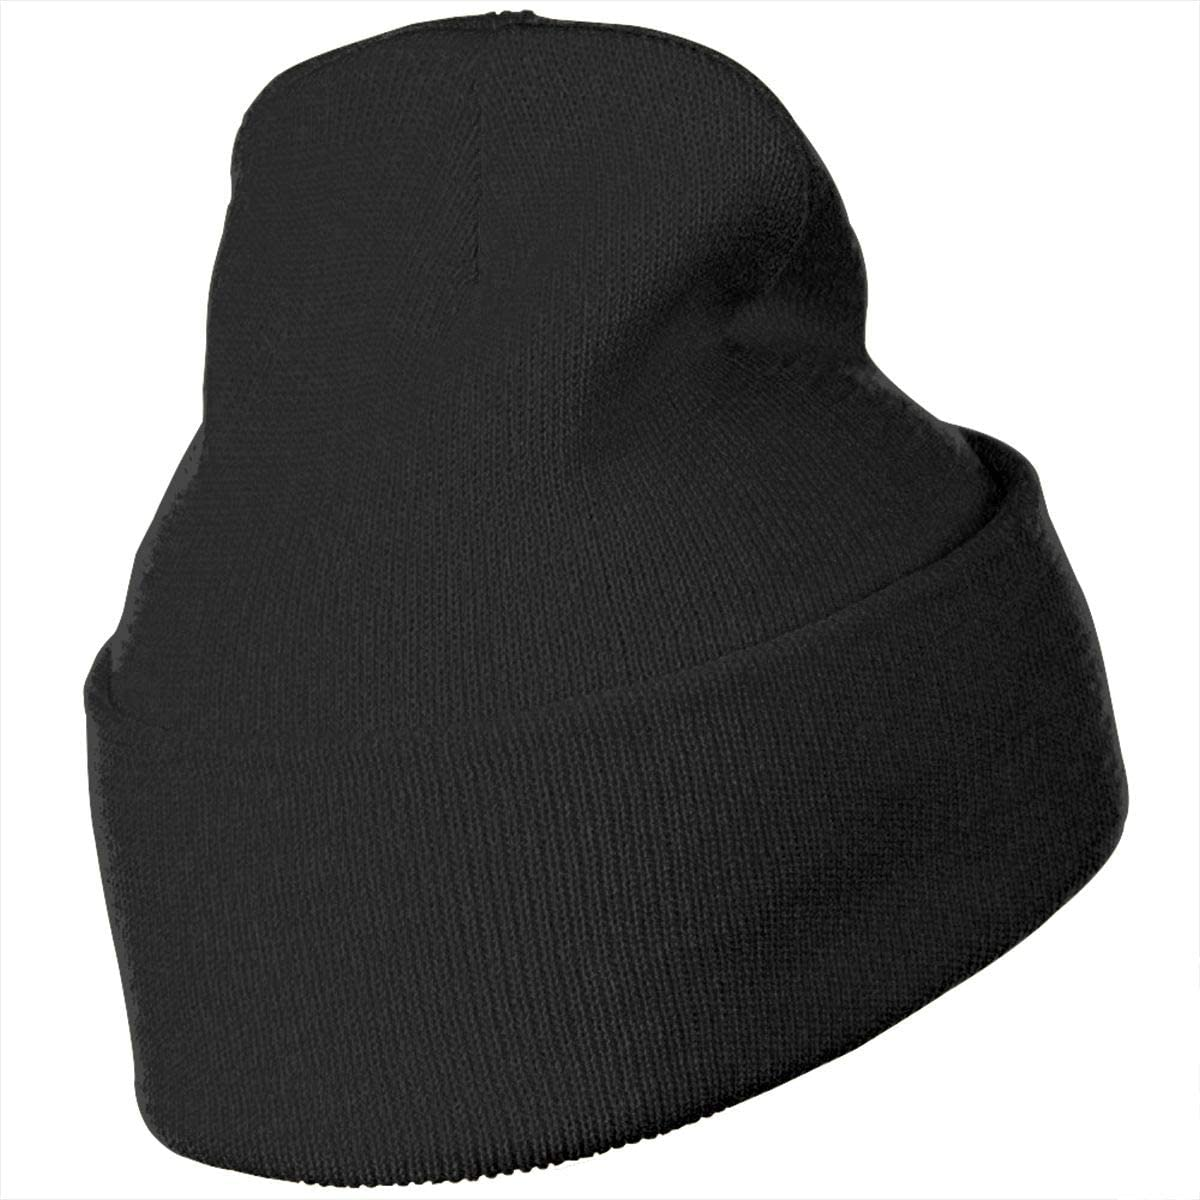 Ydbve81-G Mens and Womens 100/% Acrylic Knit Hat Cap Prickly Pear and Dachshund Soft Skull Cap